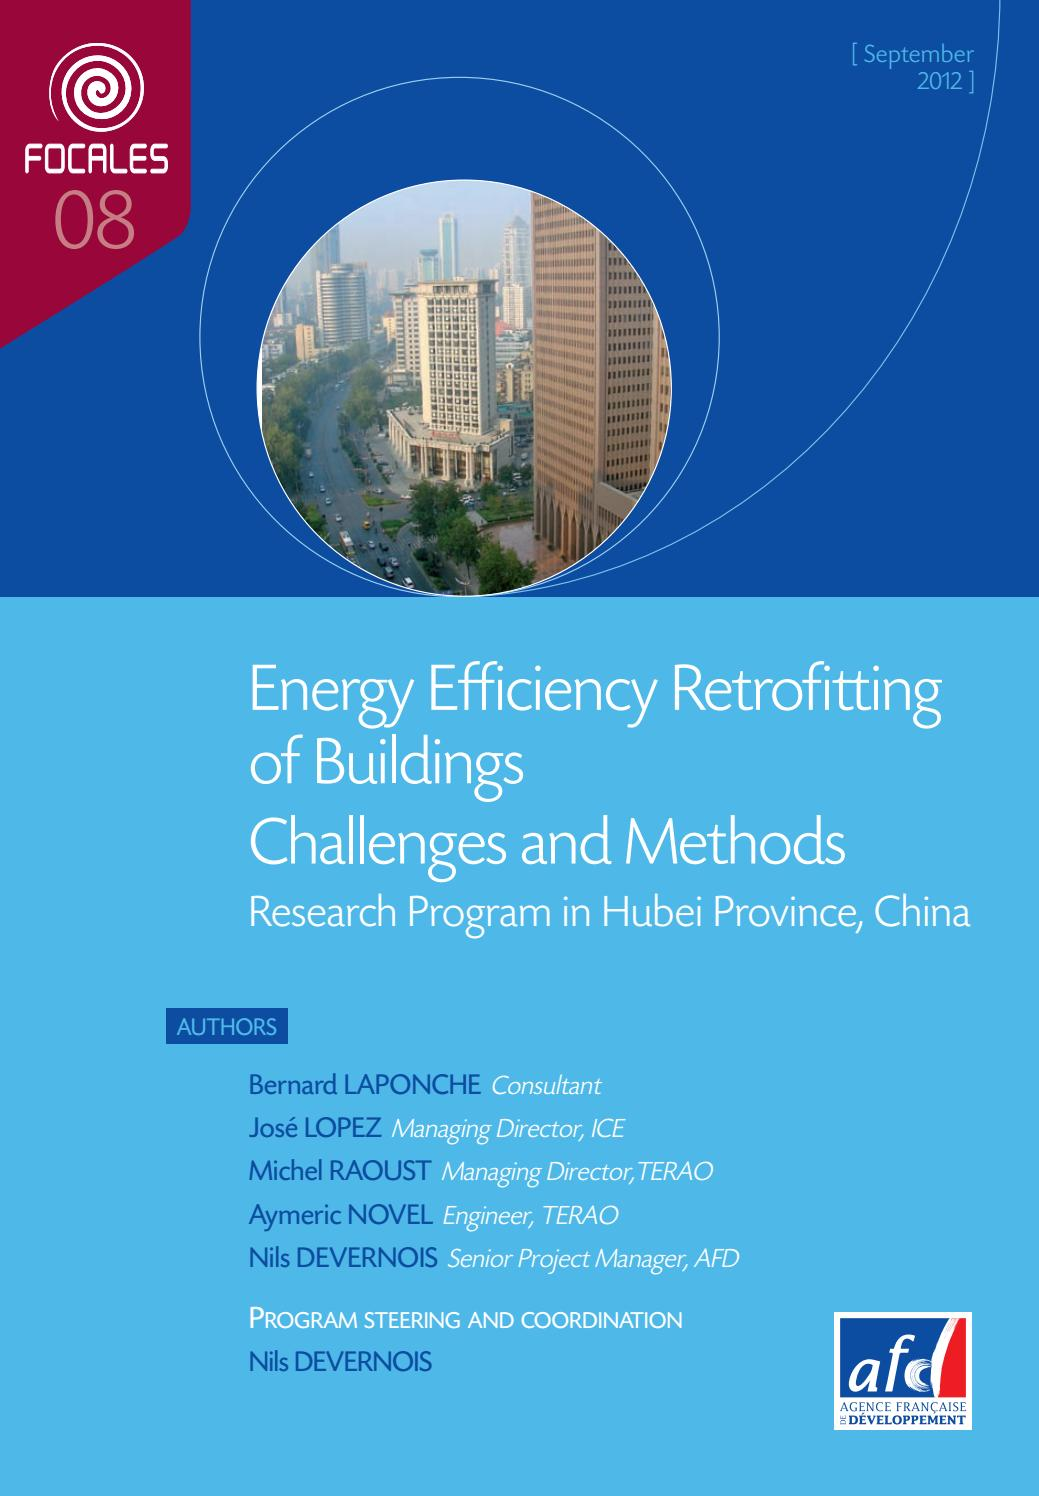 Energy Efficiency Retrofitting of Buildings Challenges and